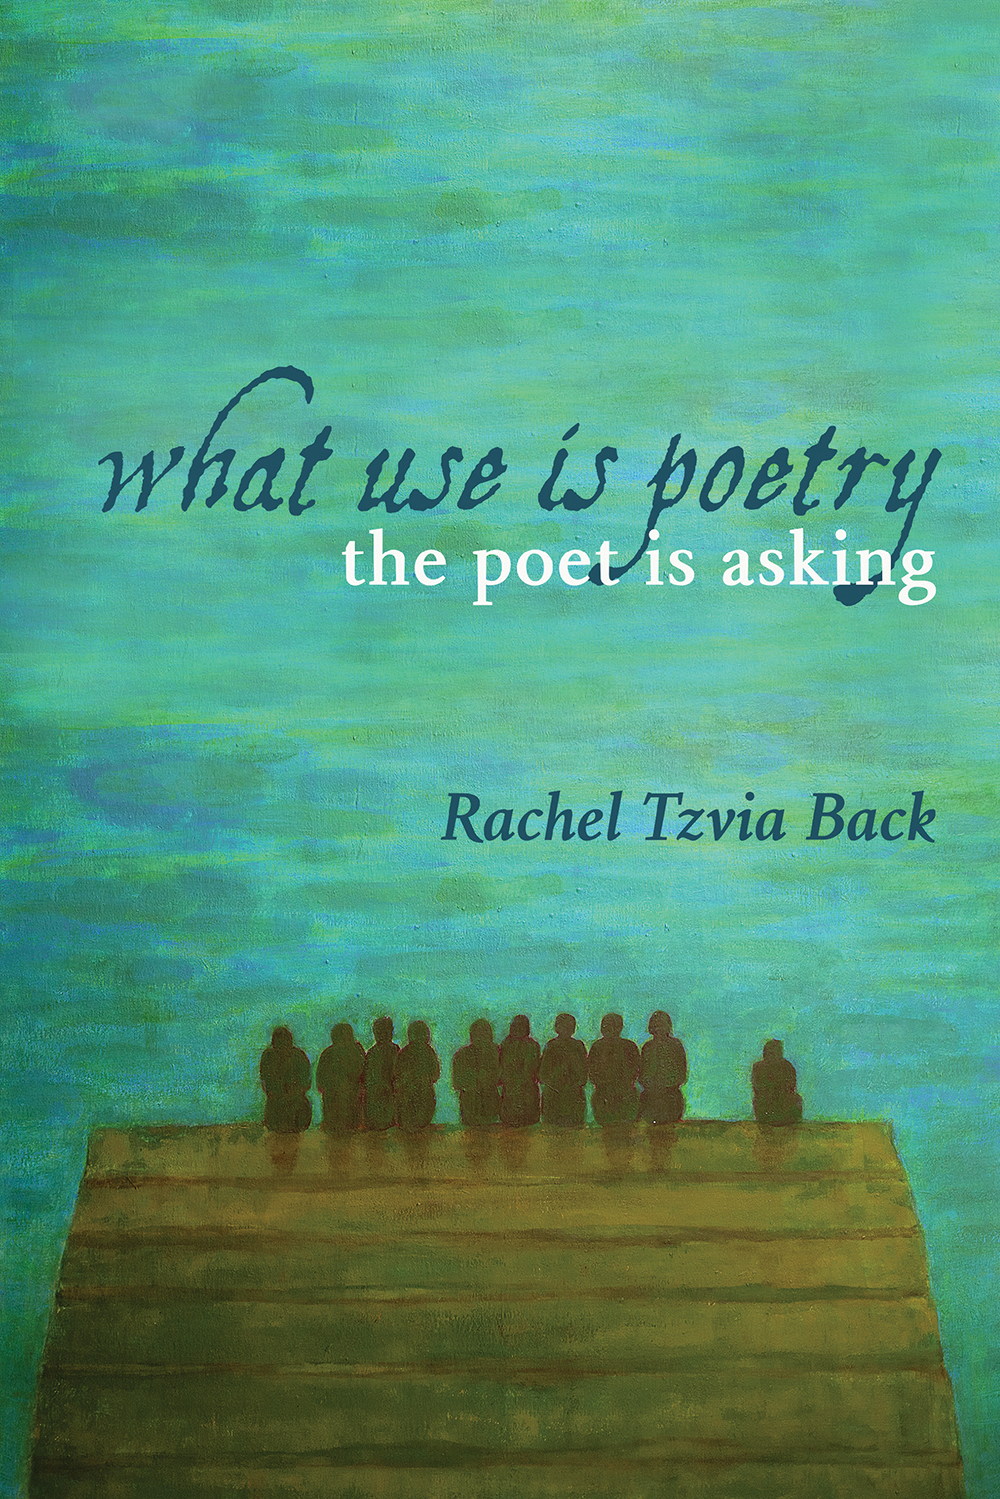 What Use Is Poetry, the Poet Is Asking